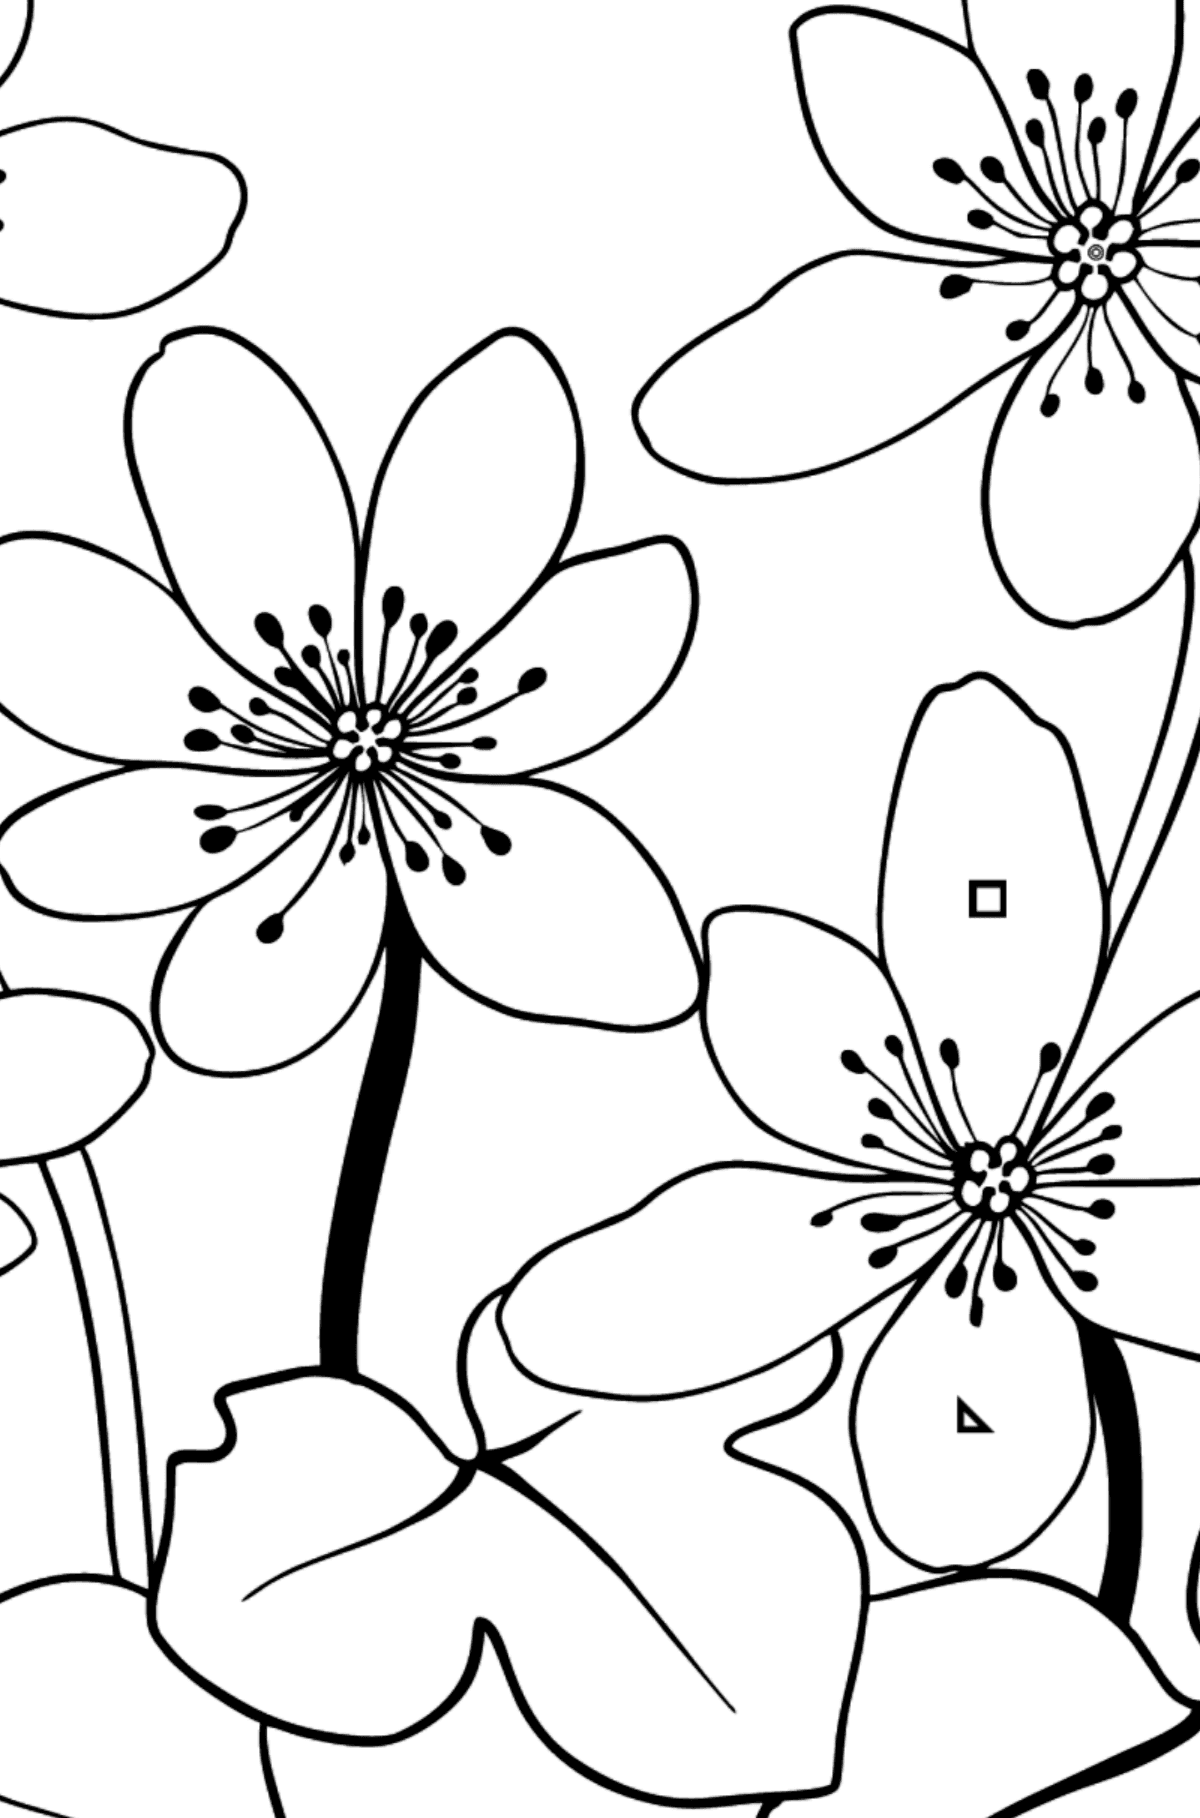 Flower Coloring Page - A Yellow and Orange Hepatica - Coloring by Geometric Shapes for Kids